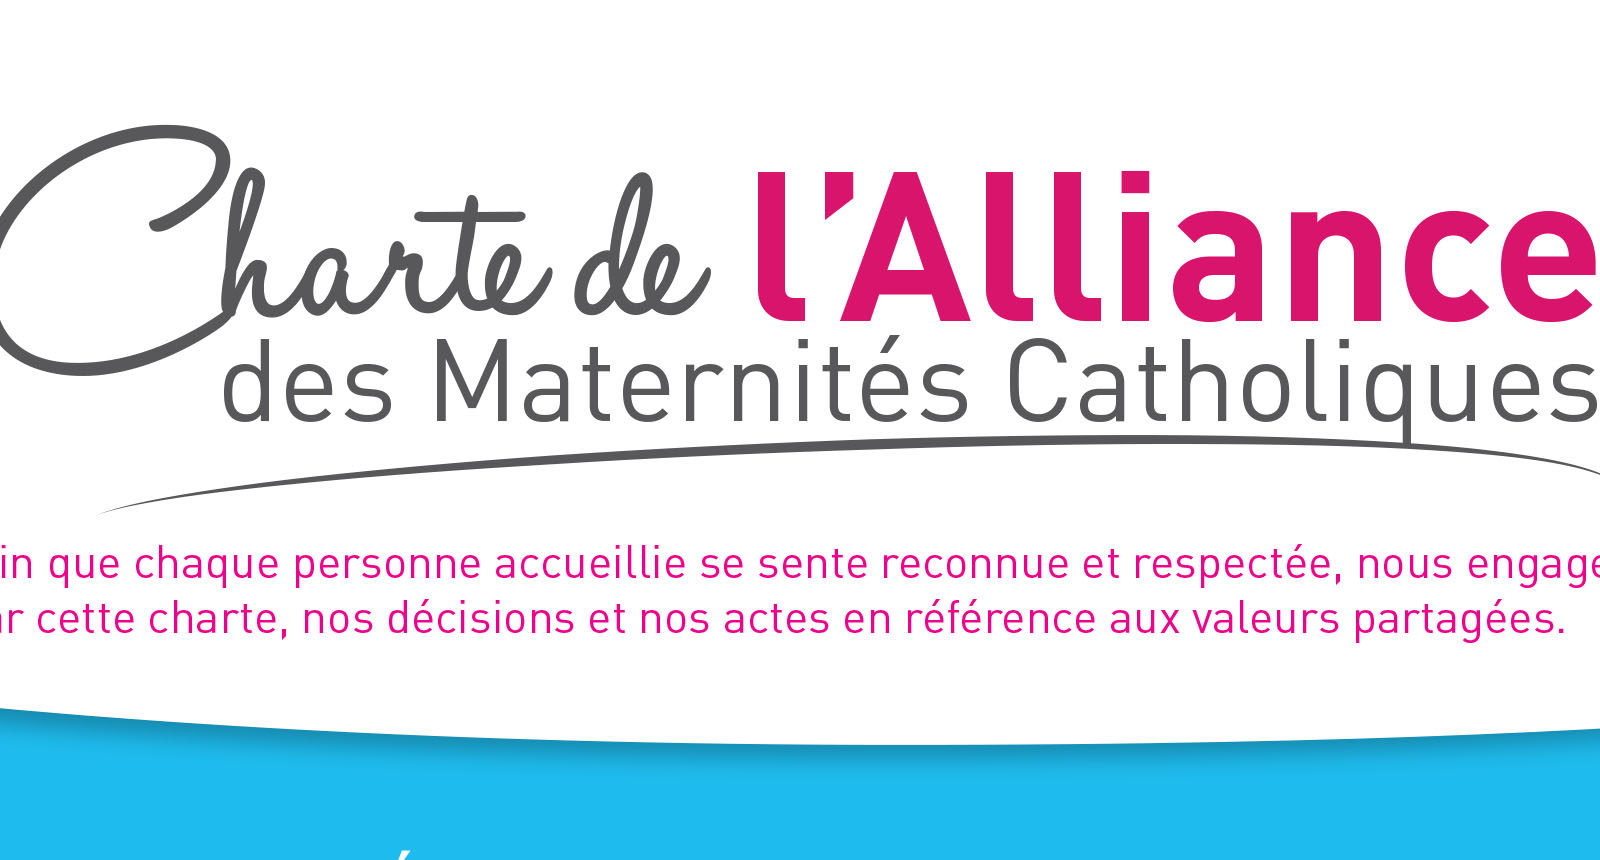 Charte Rectangle Alliance maternite catholique